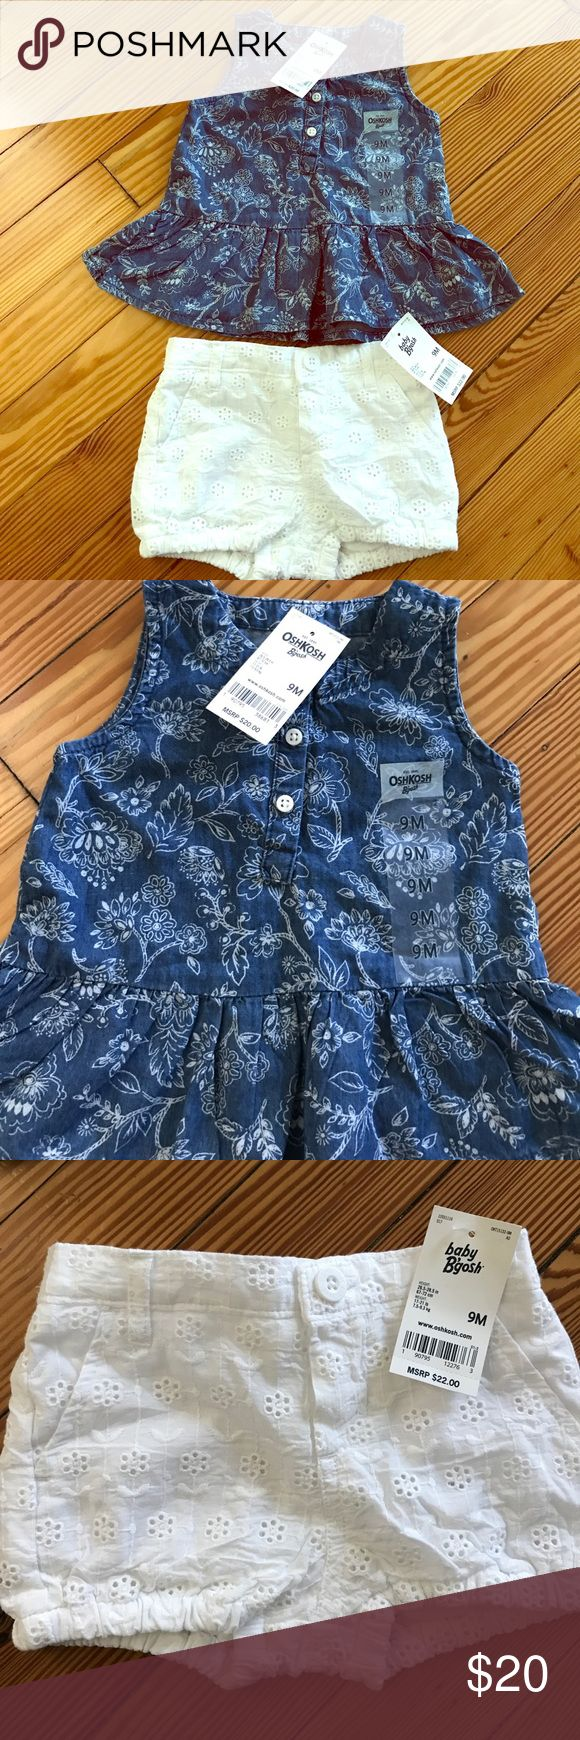 NWT OshKosh B'gosh tank and eyelet shorts New with tags!  Cotton tank and shorts. Tank has a denim/chambray look with buttons on the front and a white floral design.  The adorable white eyelet shorts have a faux button look. Elastic at the waistband and the leg holes.  Real front pockets. Both are size 9 months. Reasonable offers considered. No trades.  Willing to sell items separately. OshKosh B'gosh Matching Sets